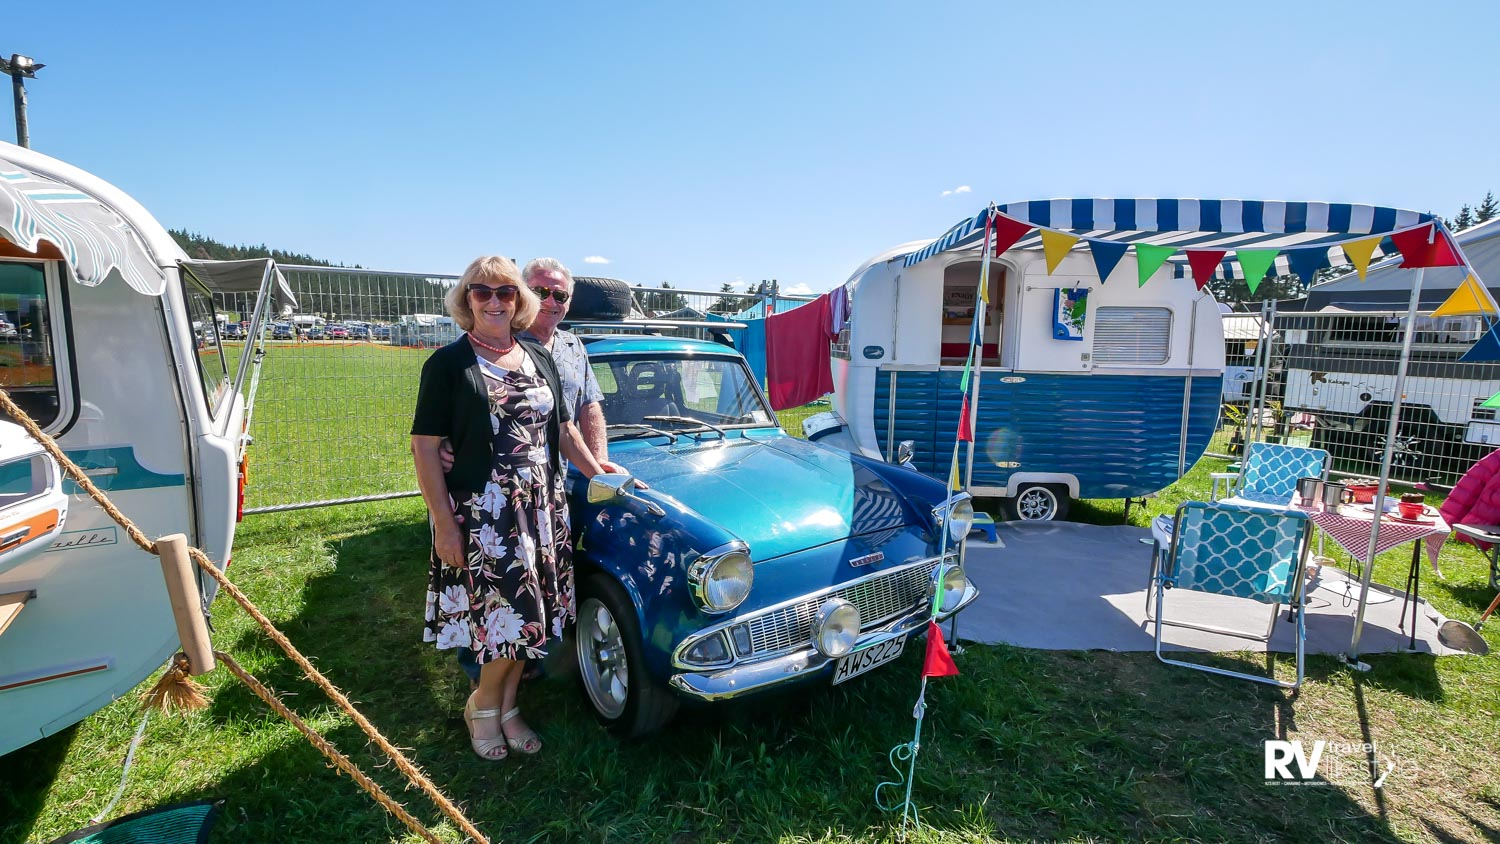 Ross and Karime Gardener, proud owners of the 1962 Ford Anglia matched with the 1956 Starliner Starlette eight-foot caravan